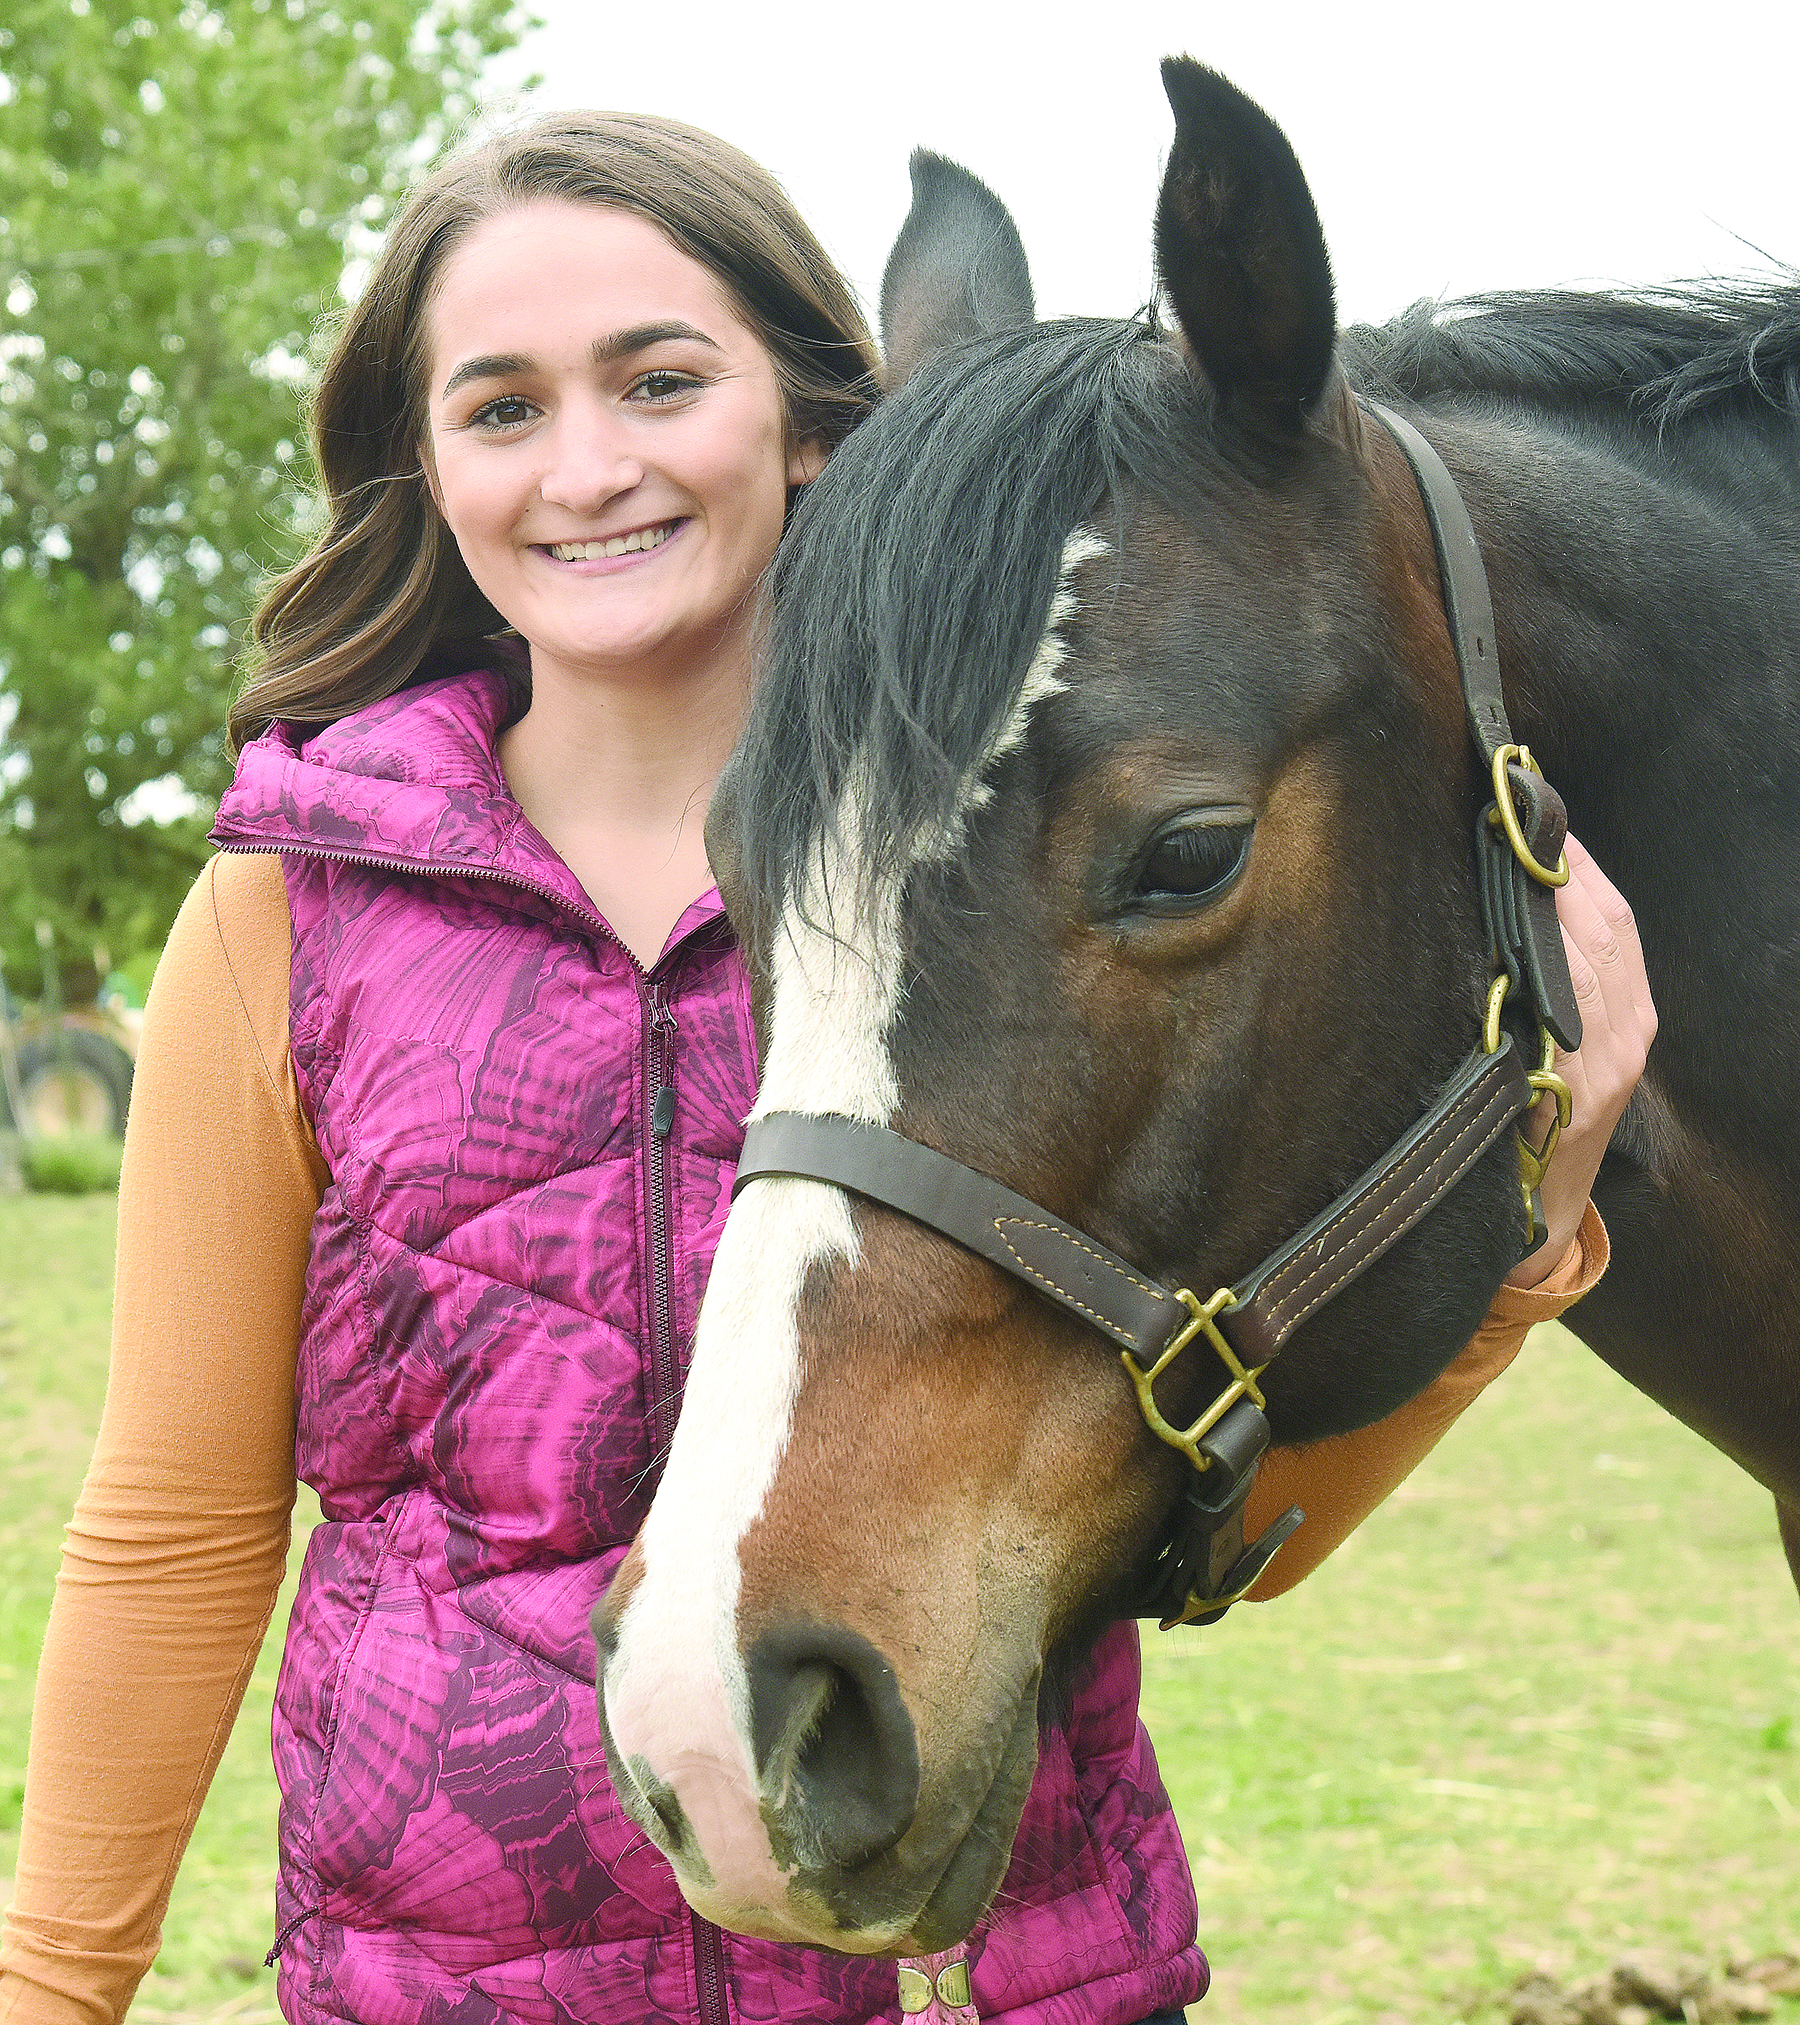 Teenager stands with her horse.